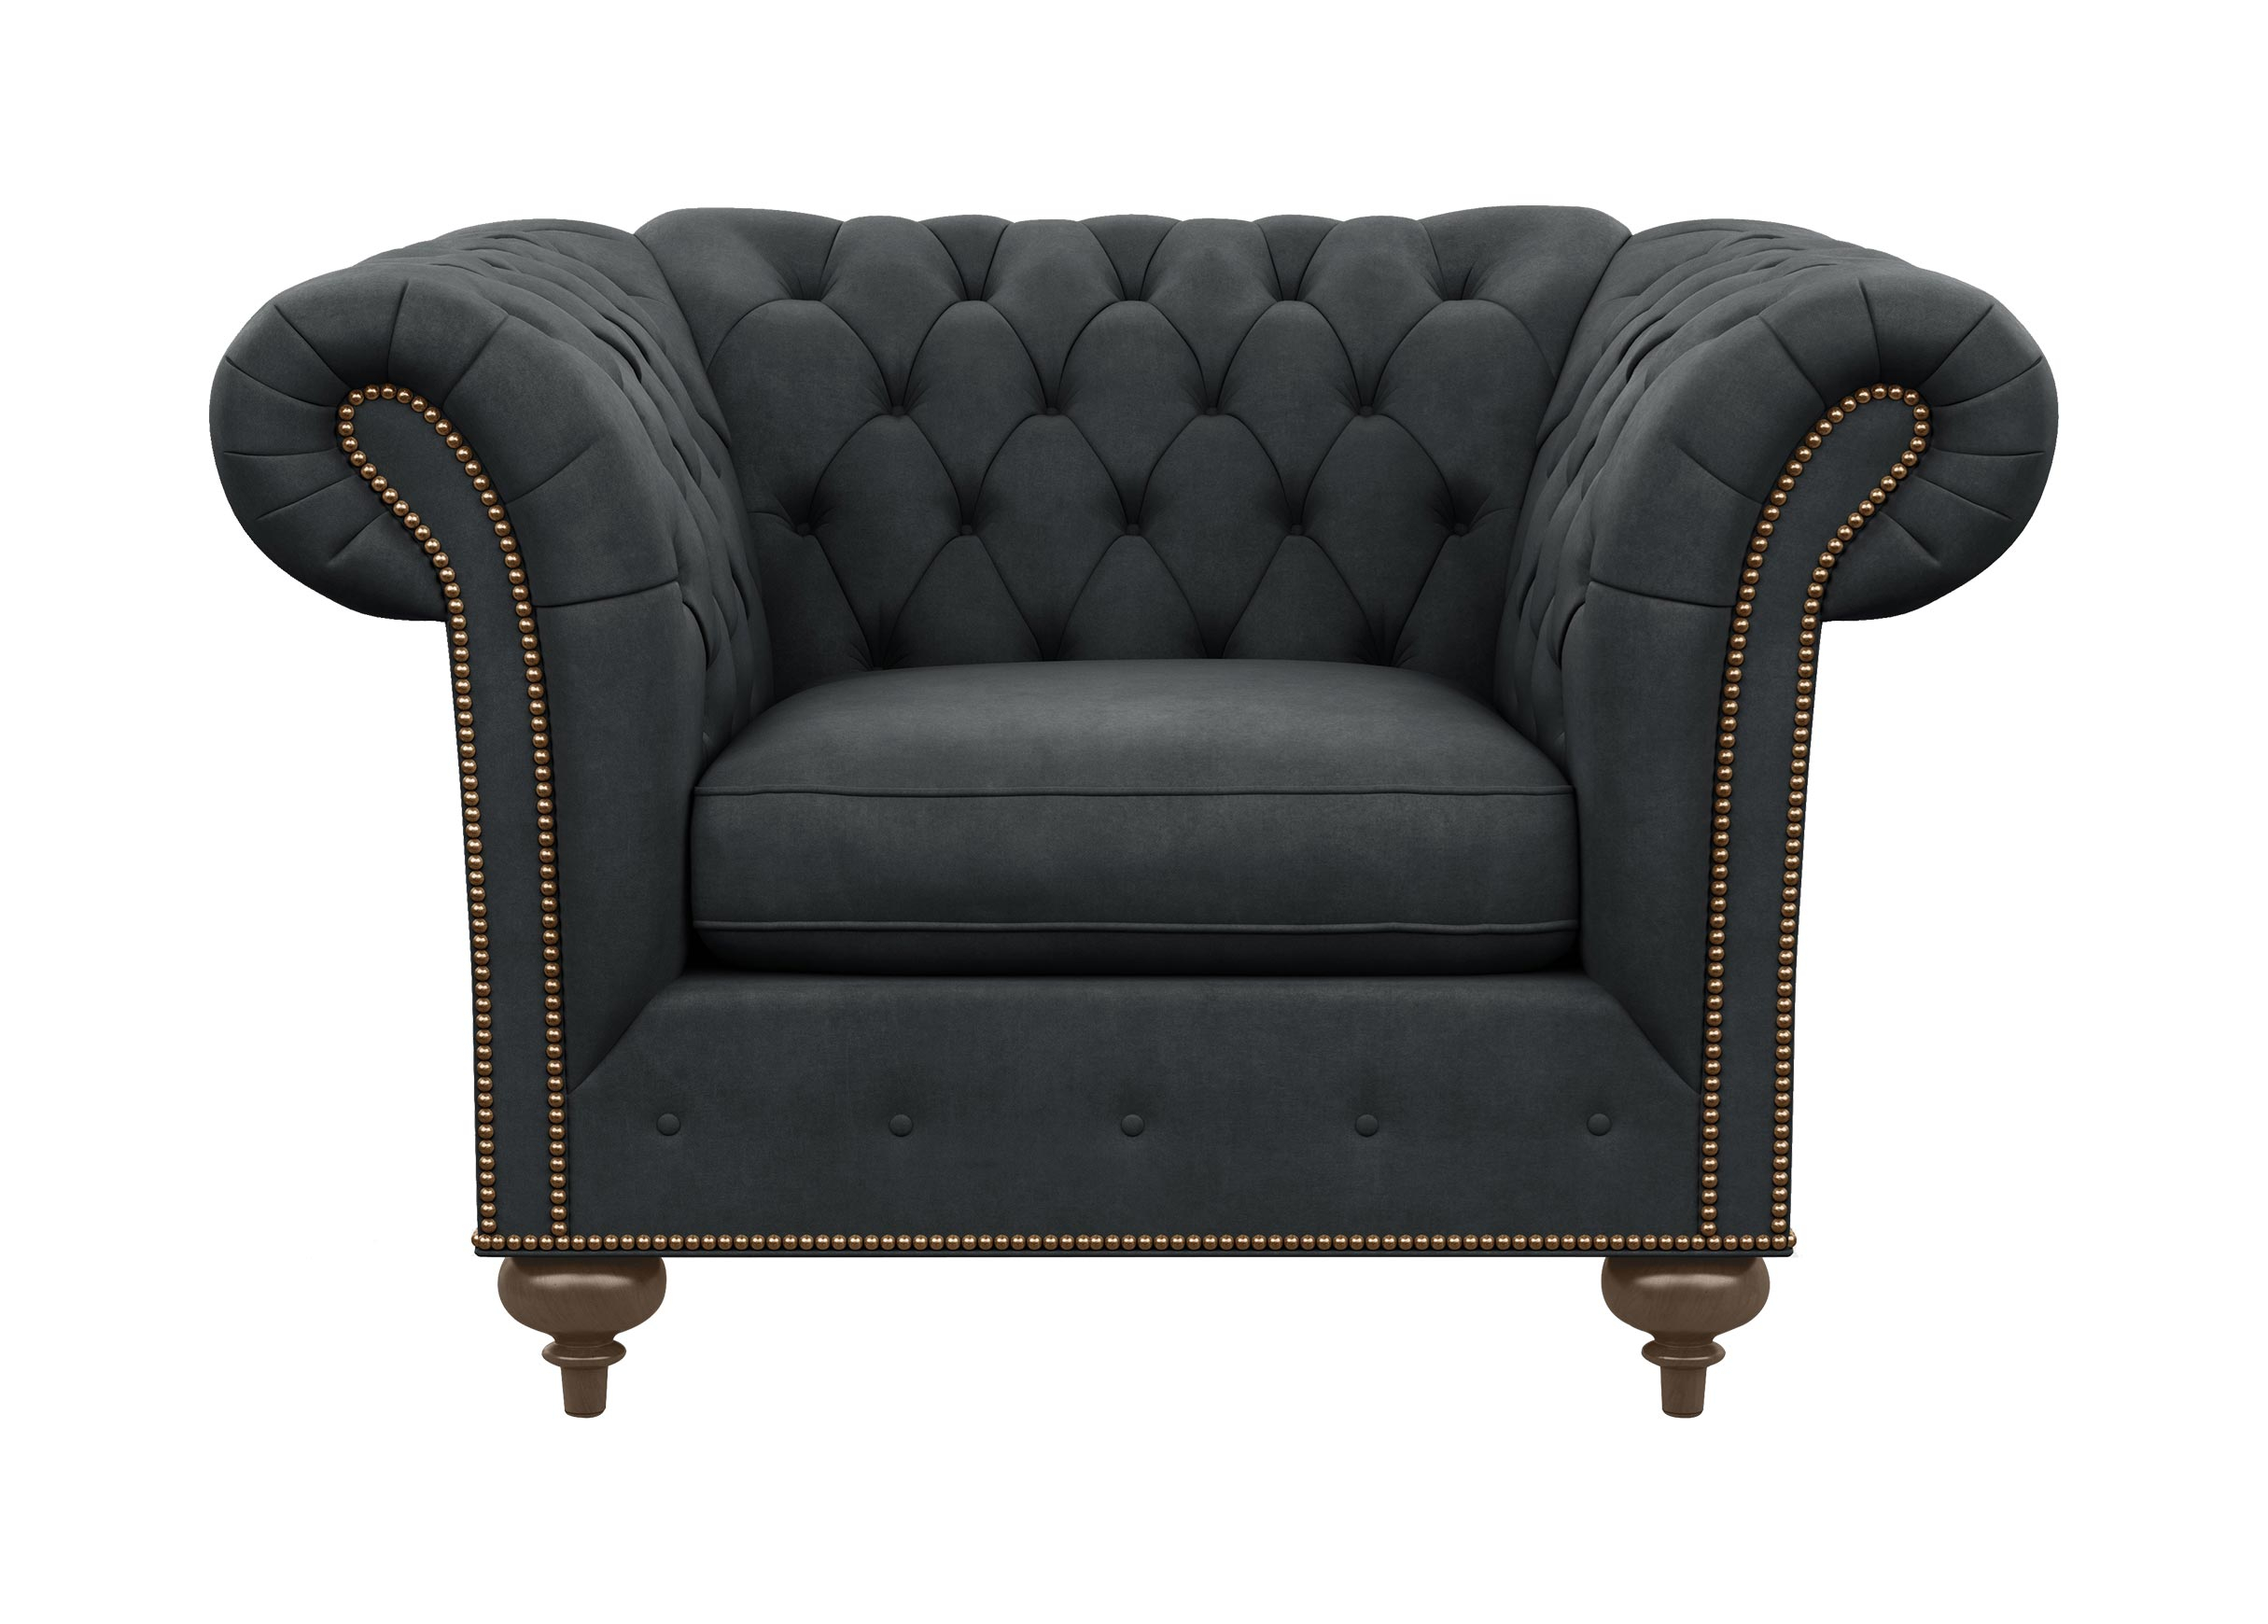 Mansfield Chair | Chairs & Chaises | Ethan Allen pertaining to Mansfield Beige Linen Sofa Chairs